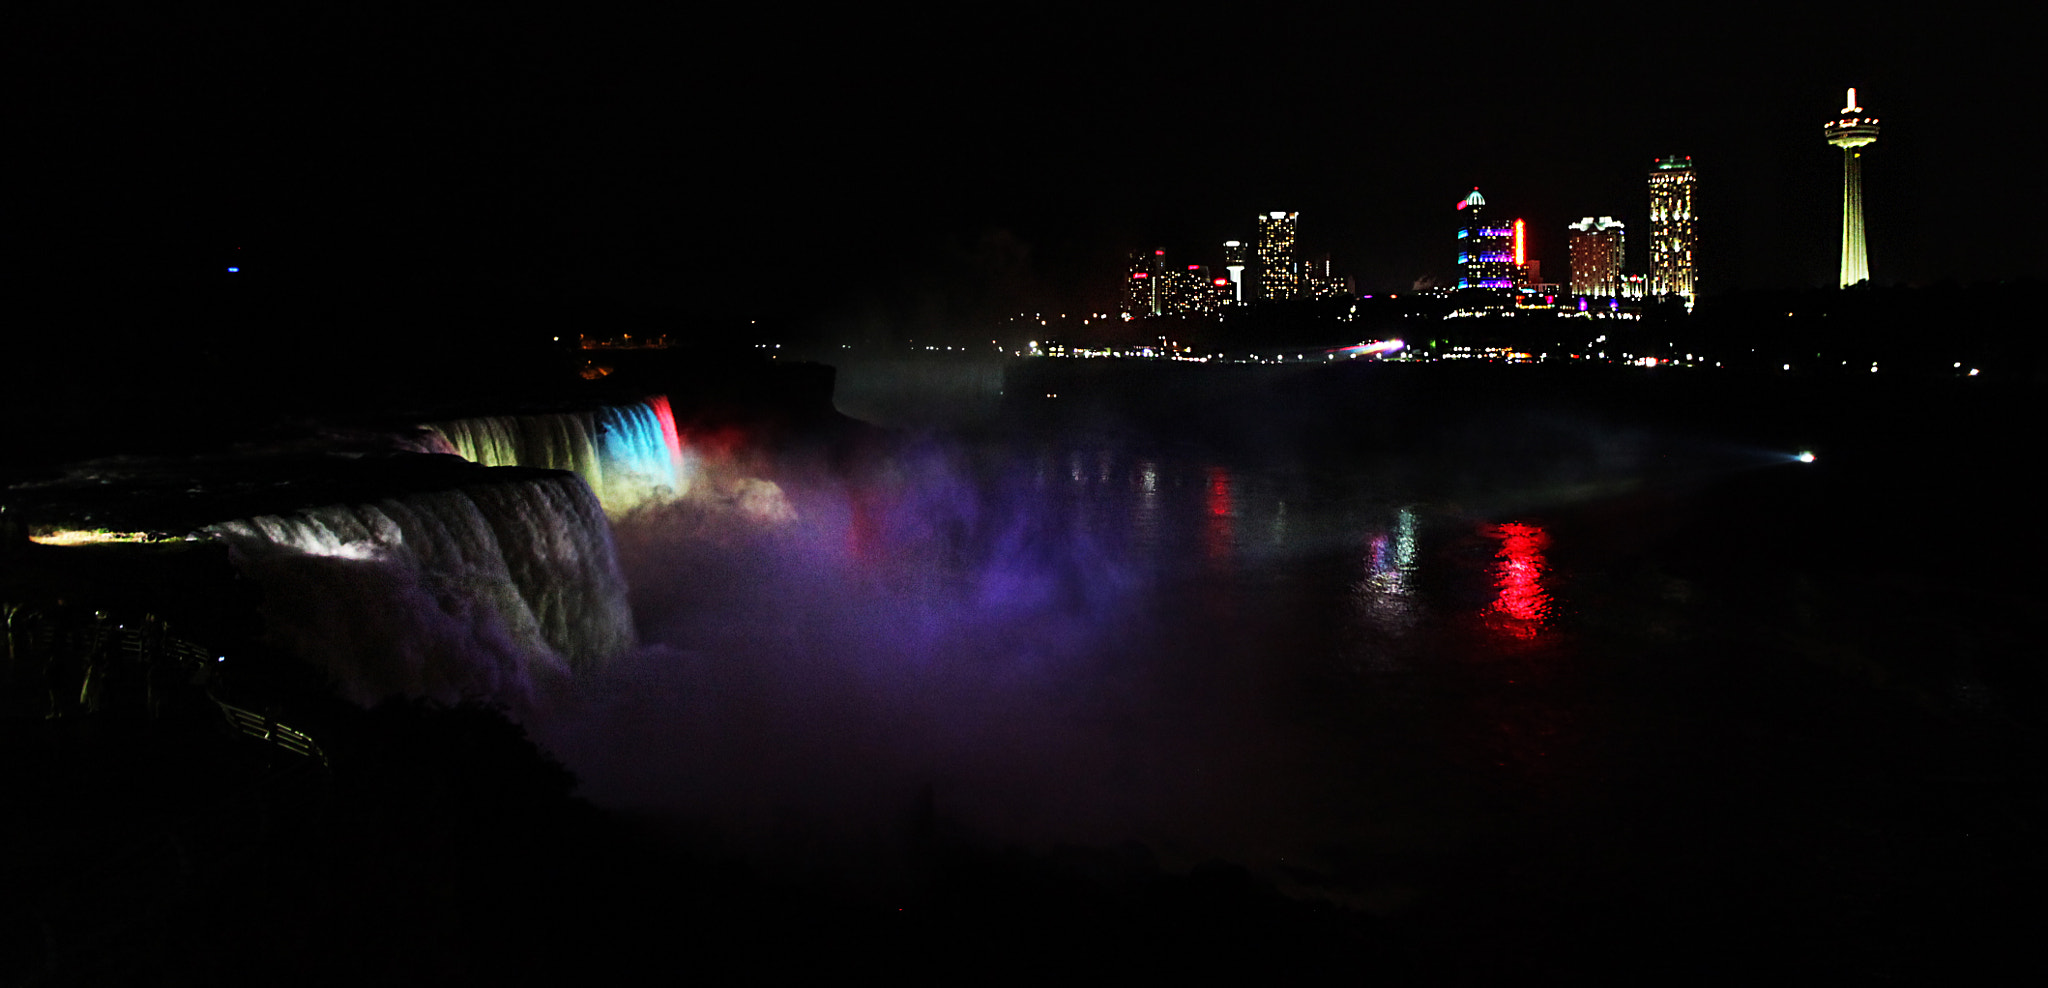 Photograph Night Niagara Falls by David Babayan on 500px